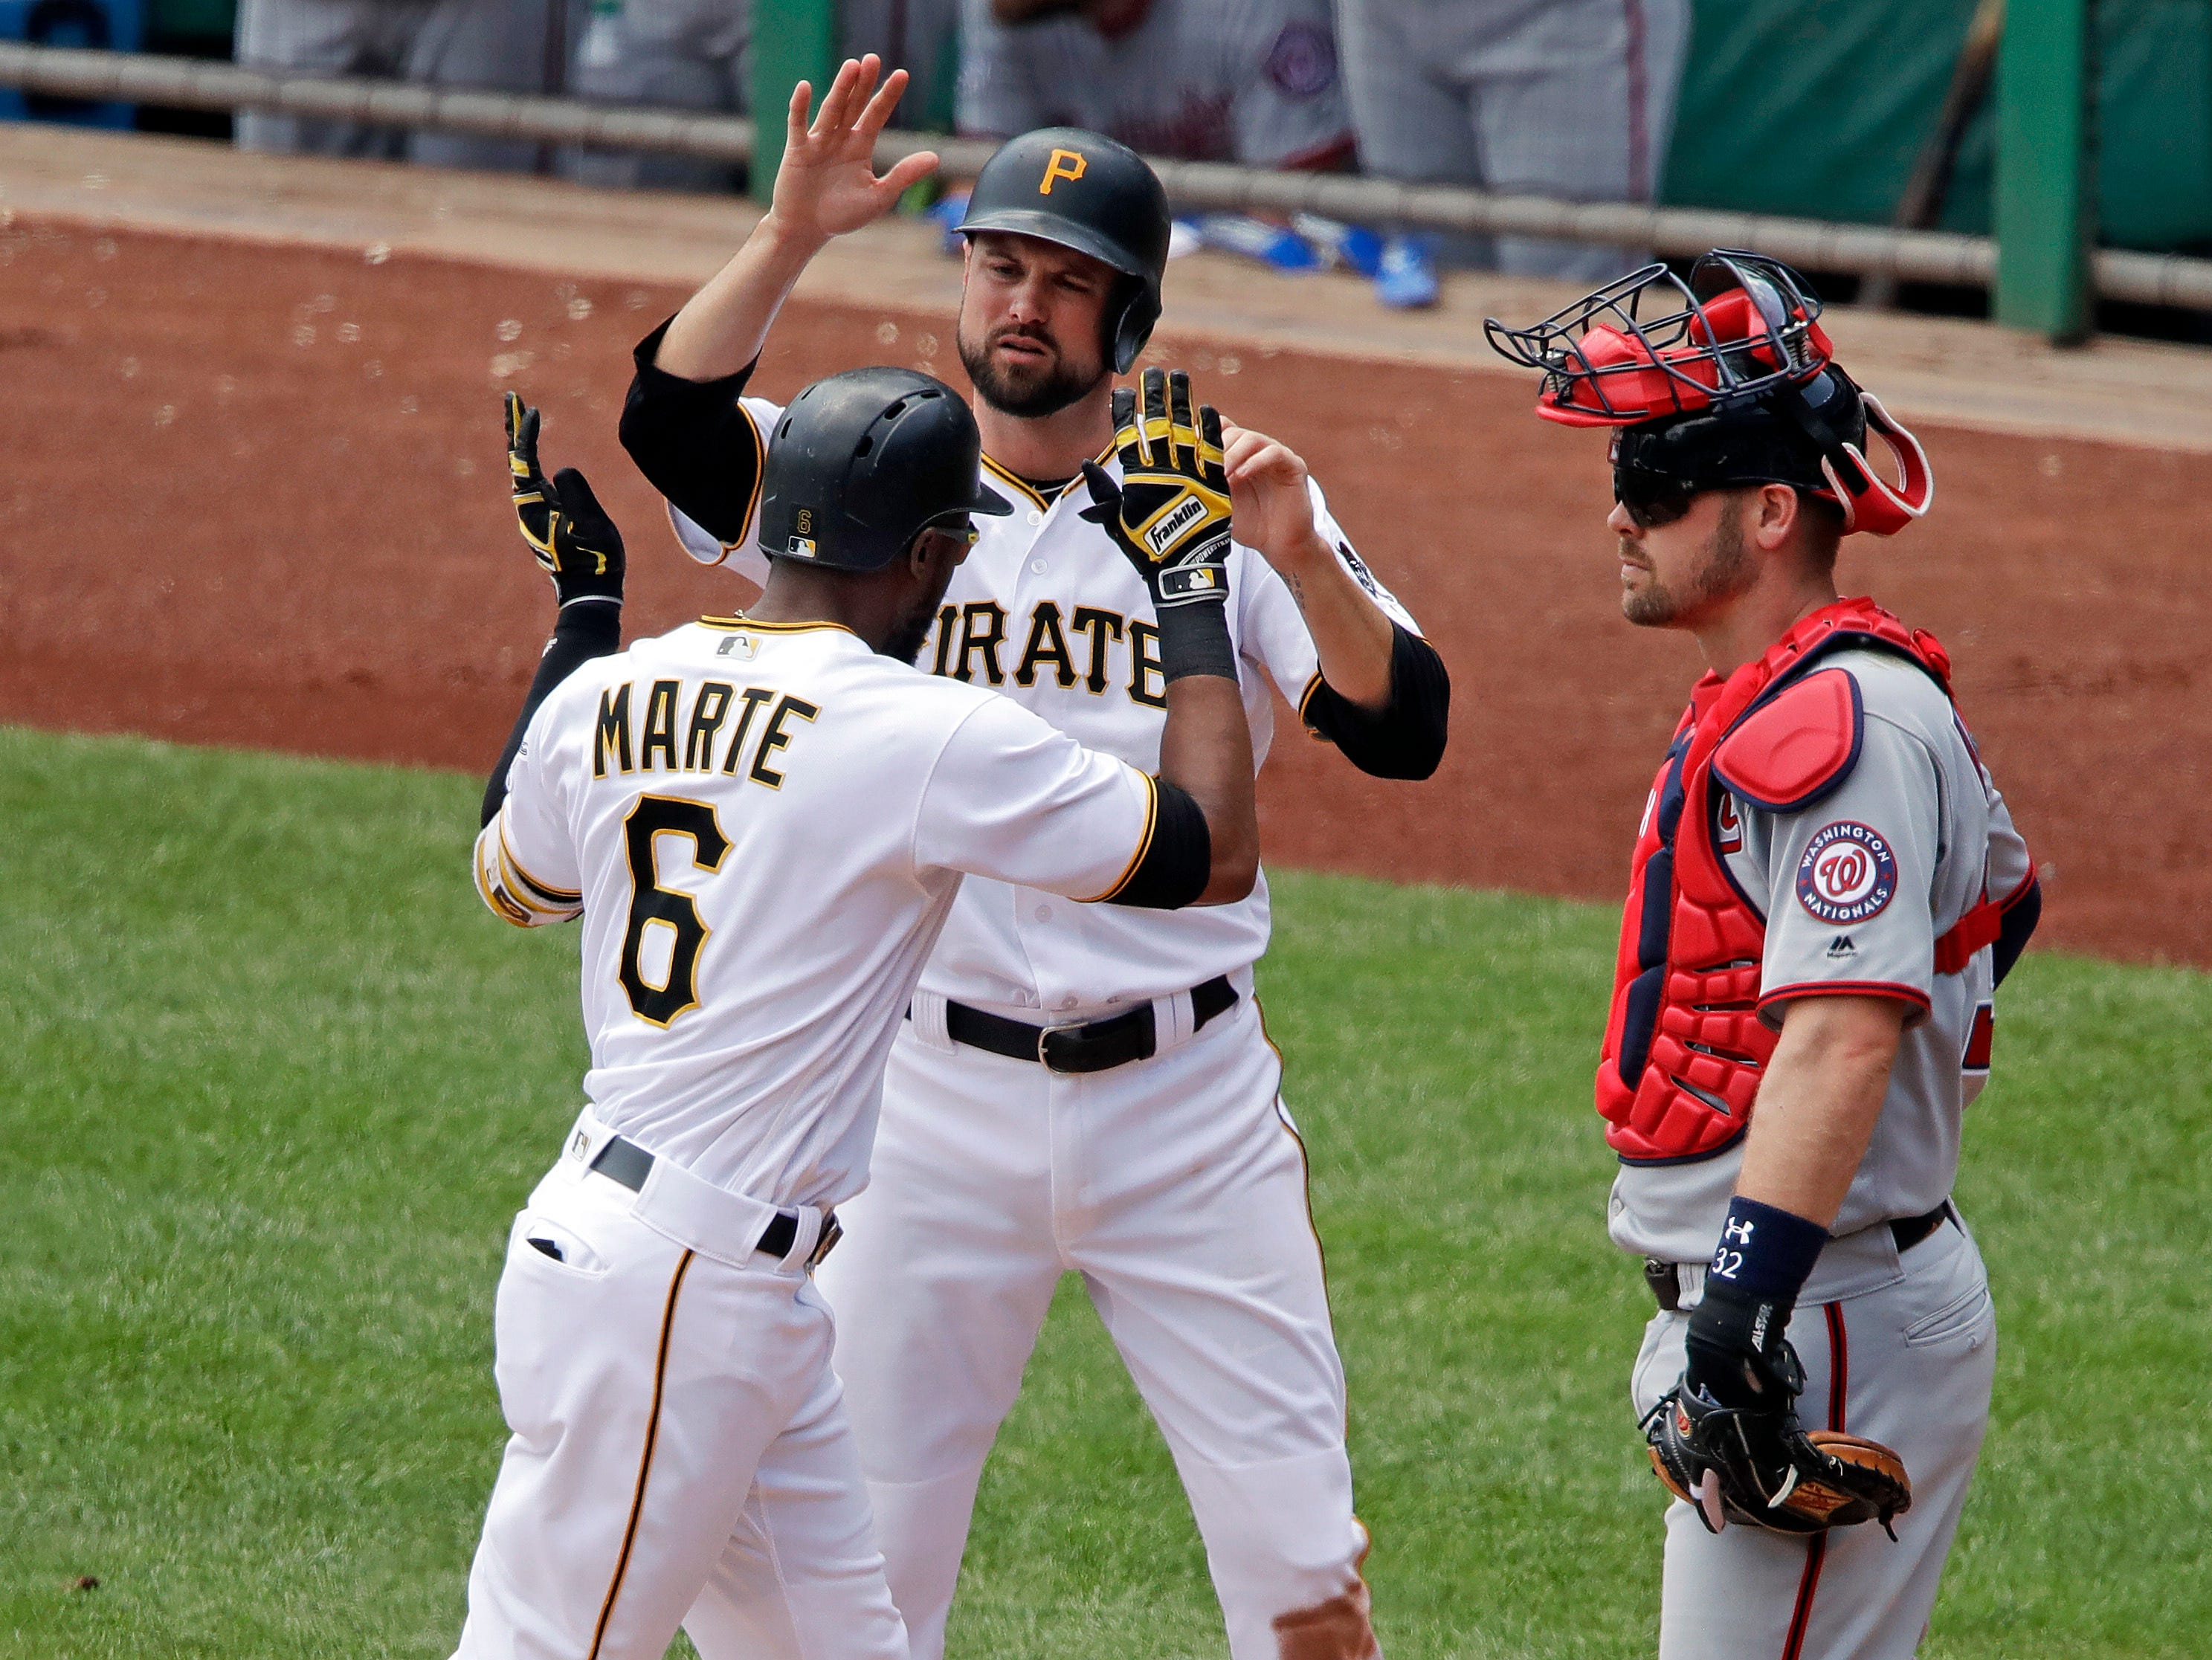 Washington Nationals catcher Matt Wieters, left, waits as Pittsburgh Pirates' Starling Marte celebrates with Jordy Mercer after hitting a two-run home run off Nationals starting pitcher Gio Gonzalez in the third inning of a game in Pittsburgh, Wednesday, July 11, 2018.